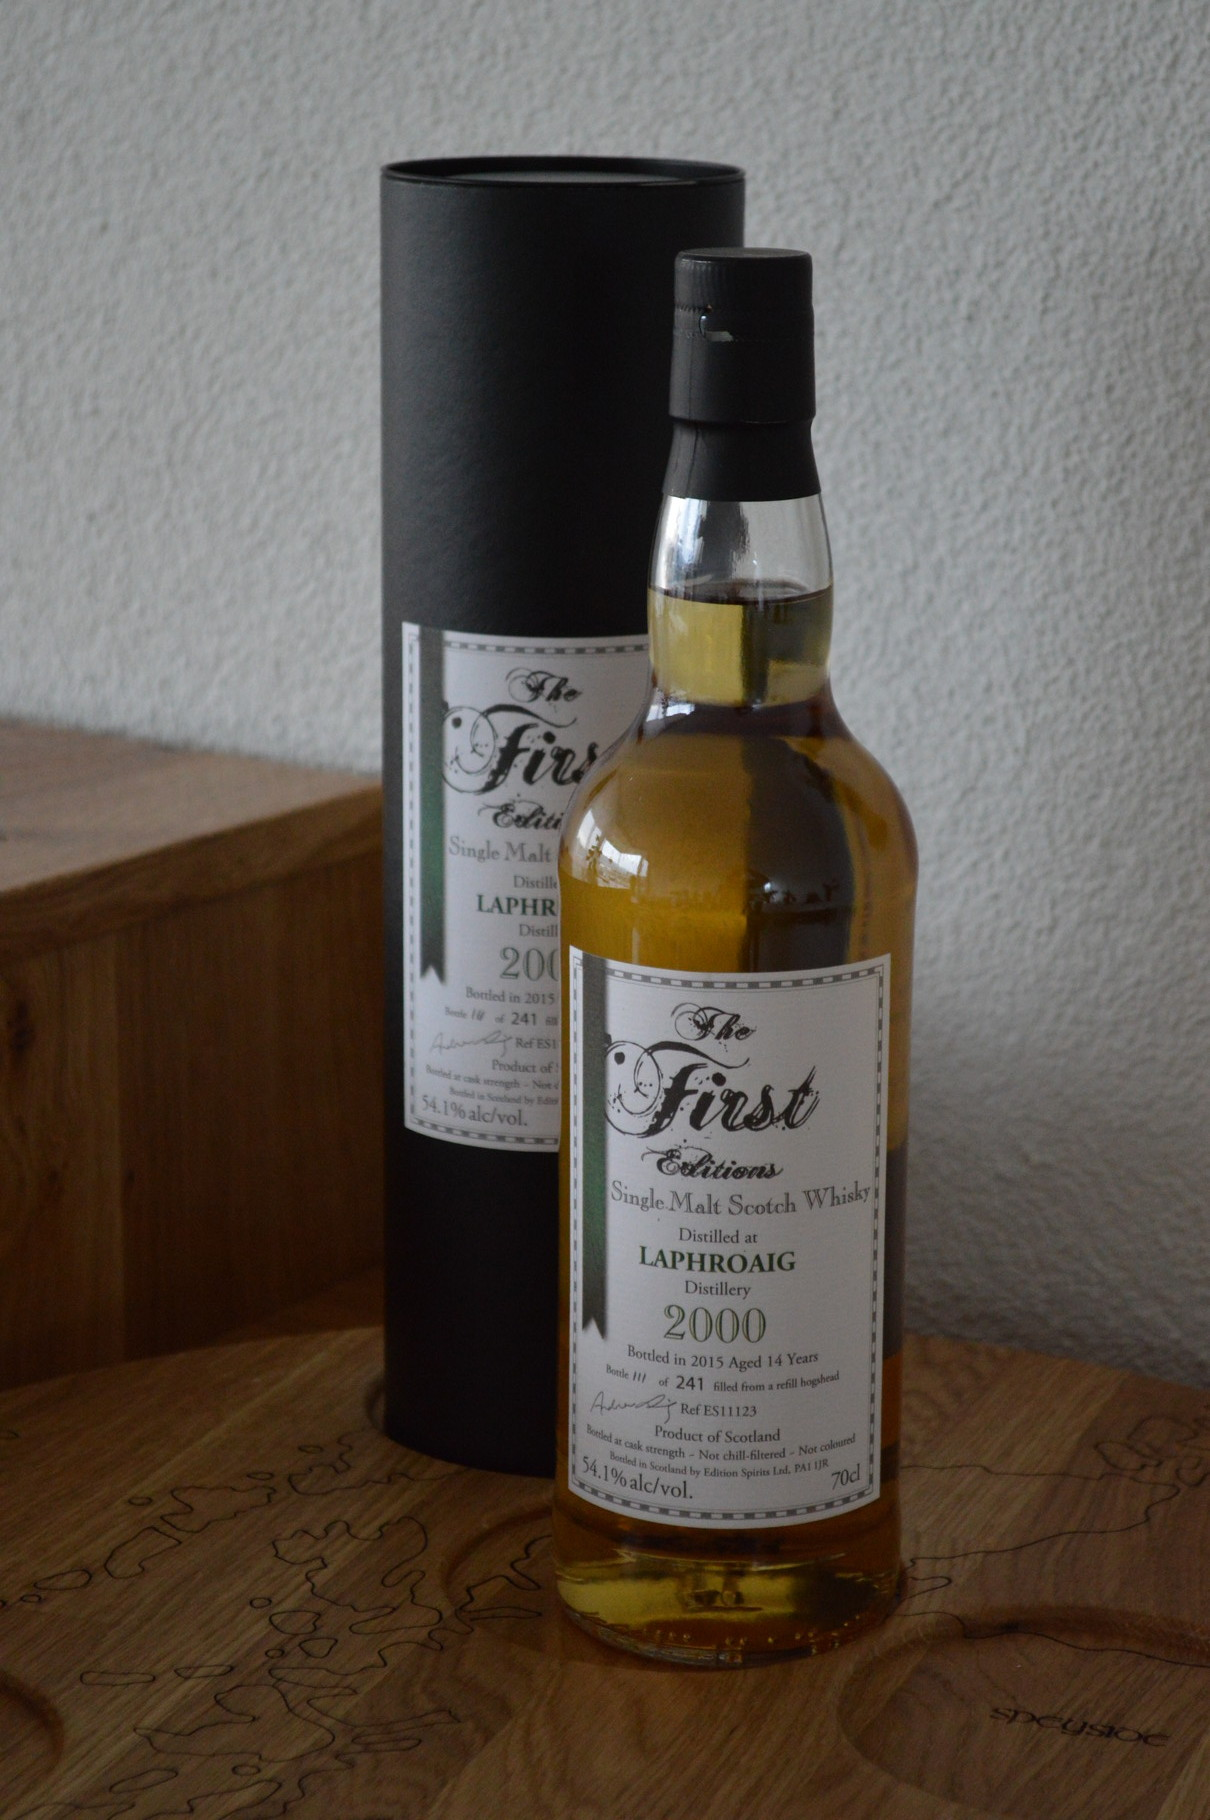 ISLAY - Laphroaig - Aged 10 years - Bottler: The first Edition - 70cl - 54,1%